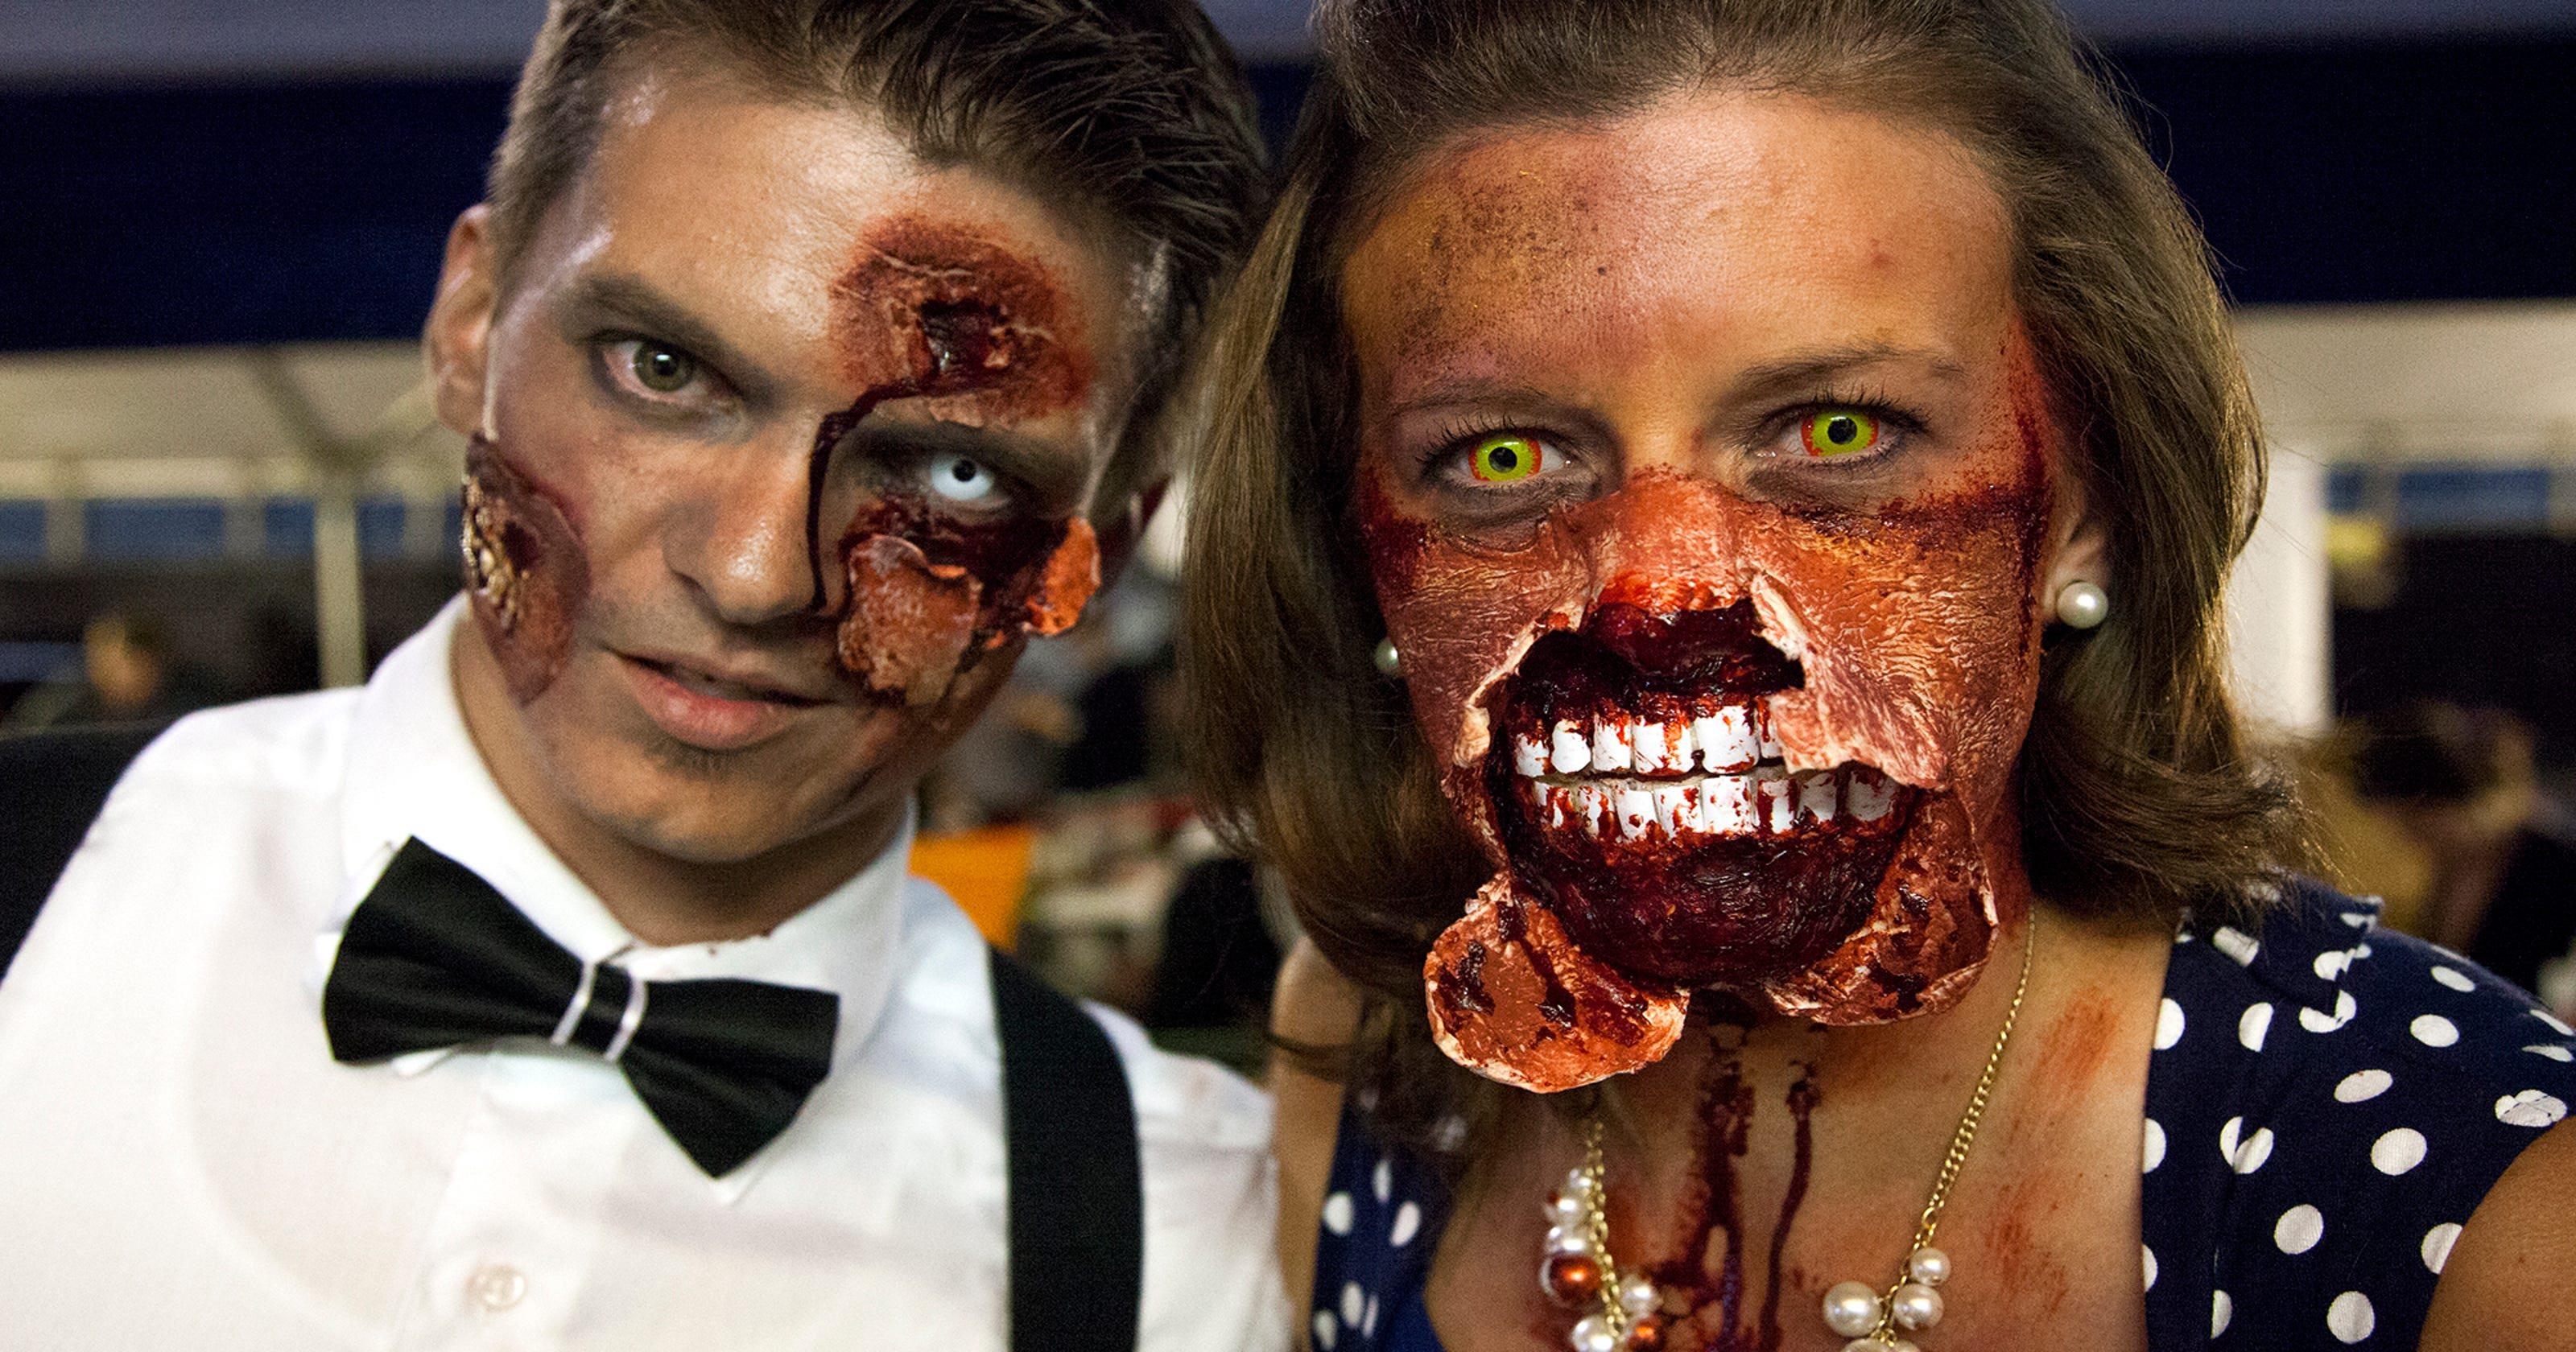 Your guide to getting zombie-fied this Halloween